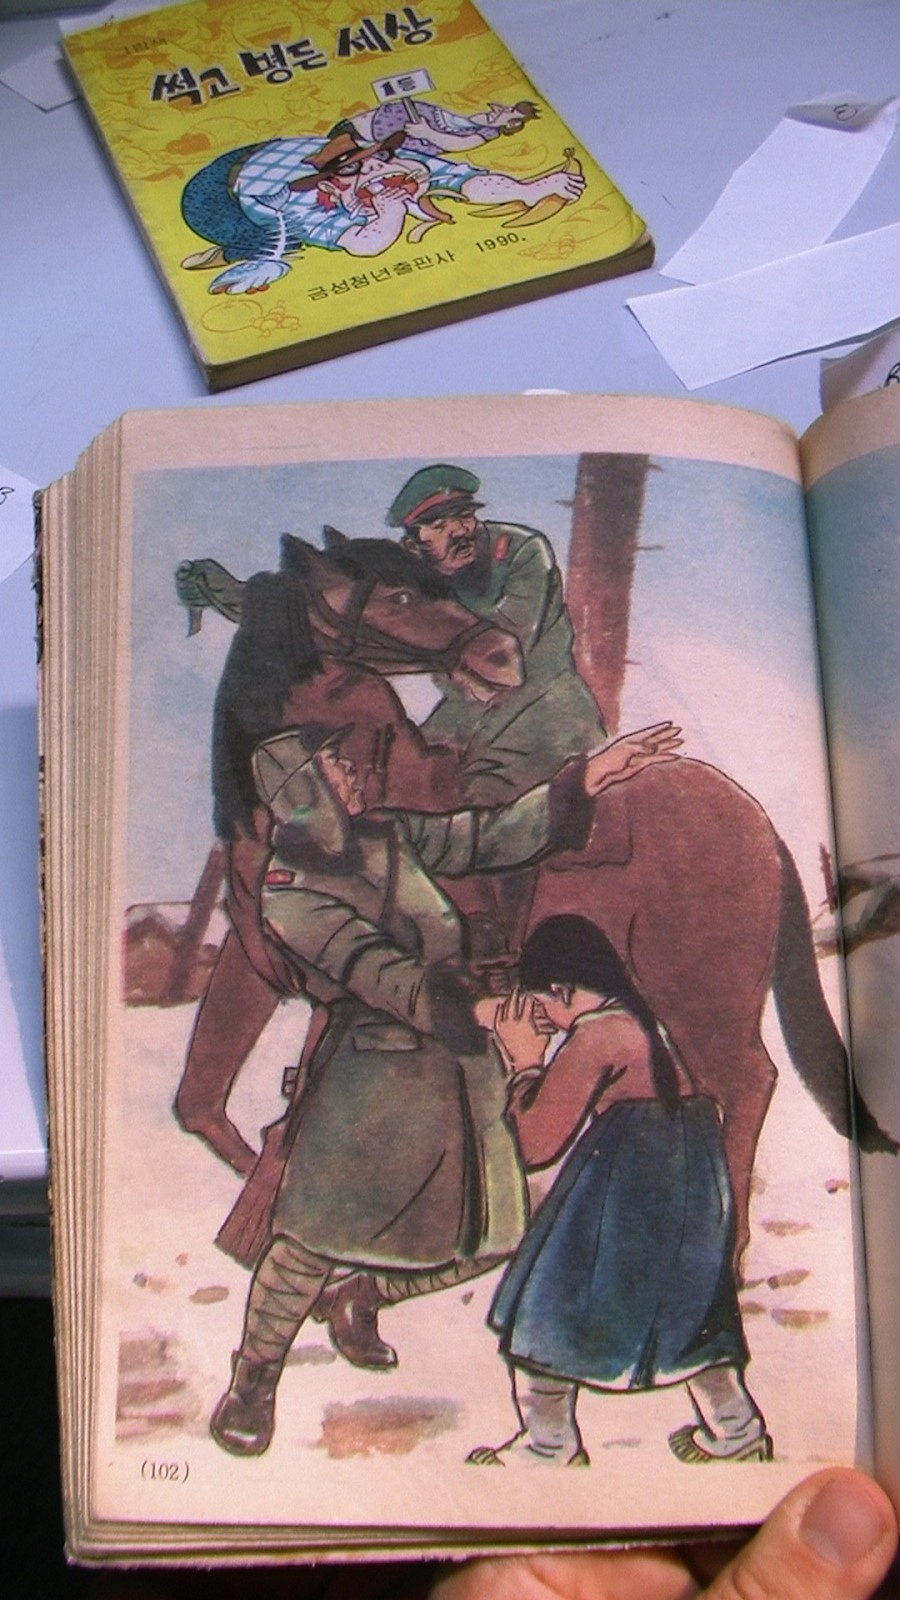 Japanese troops harass Korean girl in North Korean children's story; anti-American comic up top (collection of Adam Cathcart)